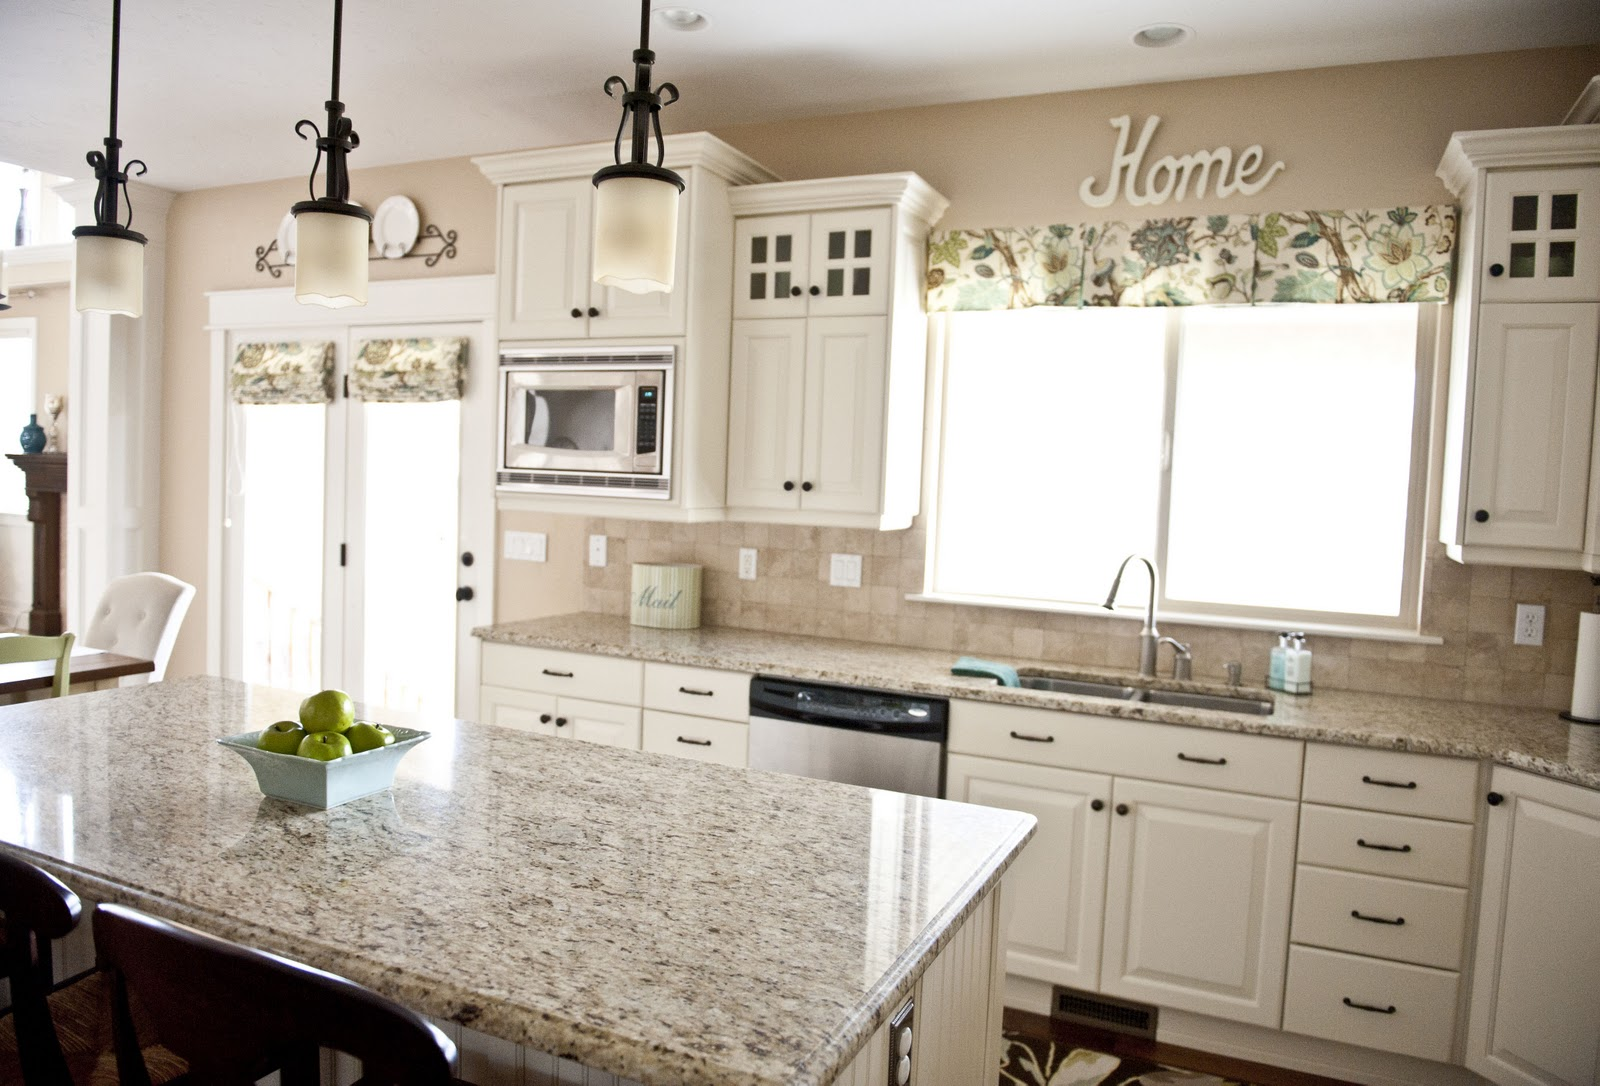 sita montgomery interiors my home tour kitchen on best colors for kitchen walls id=88123